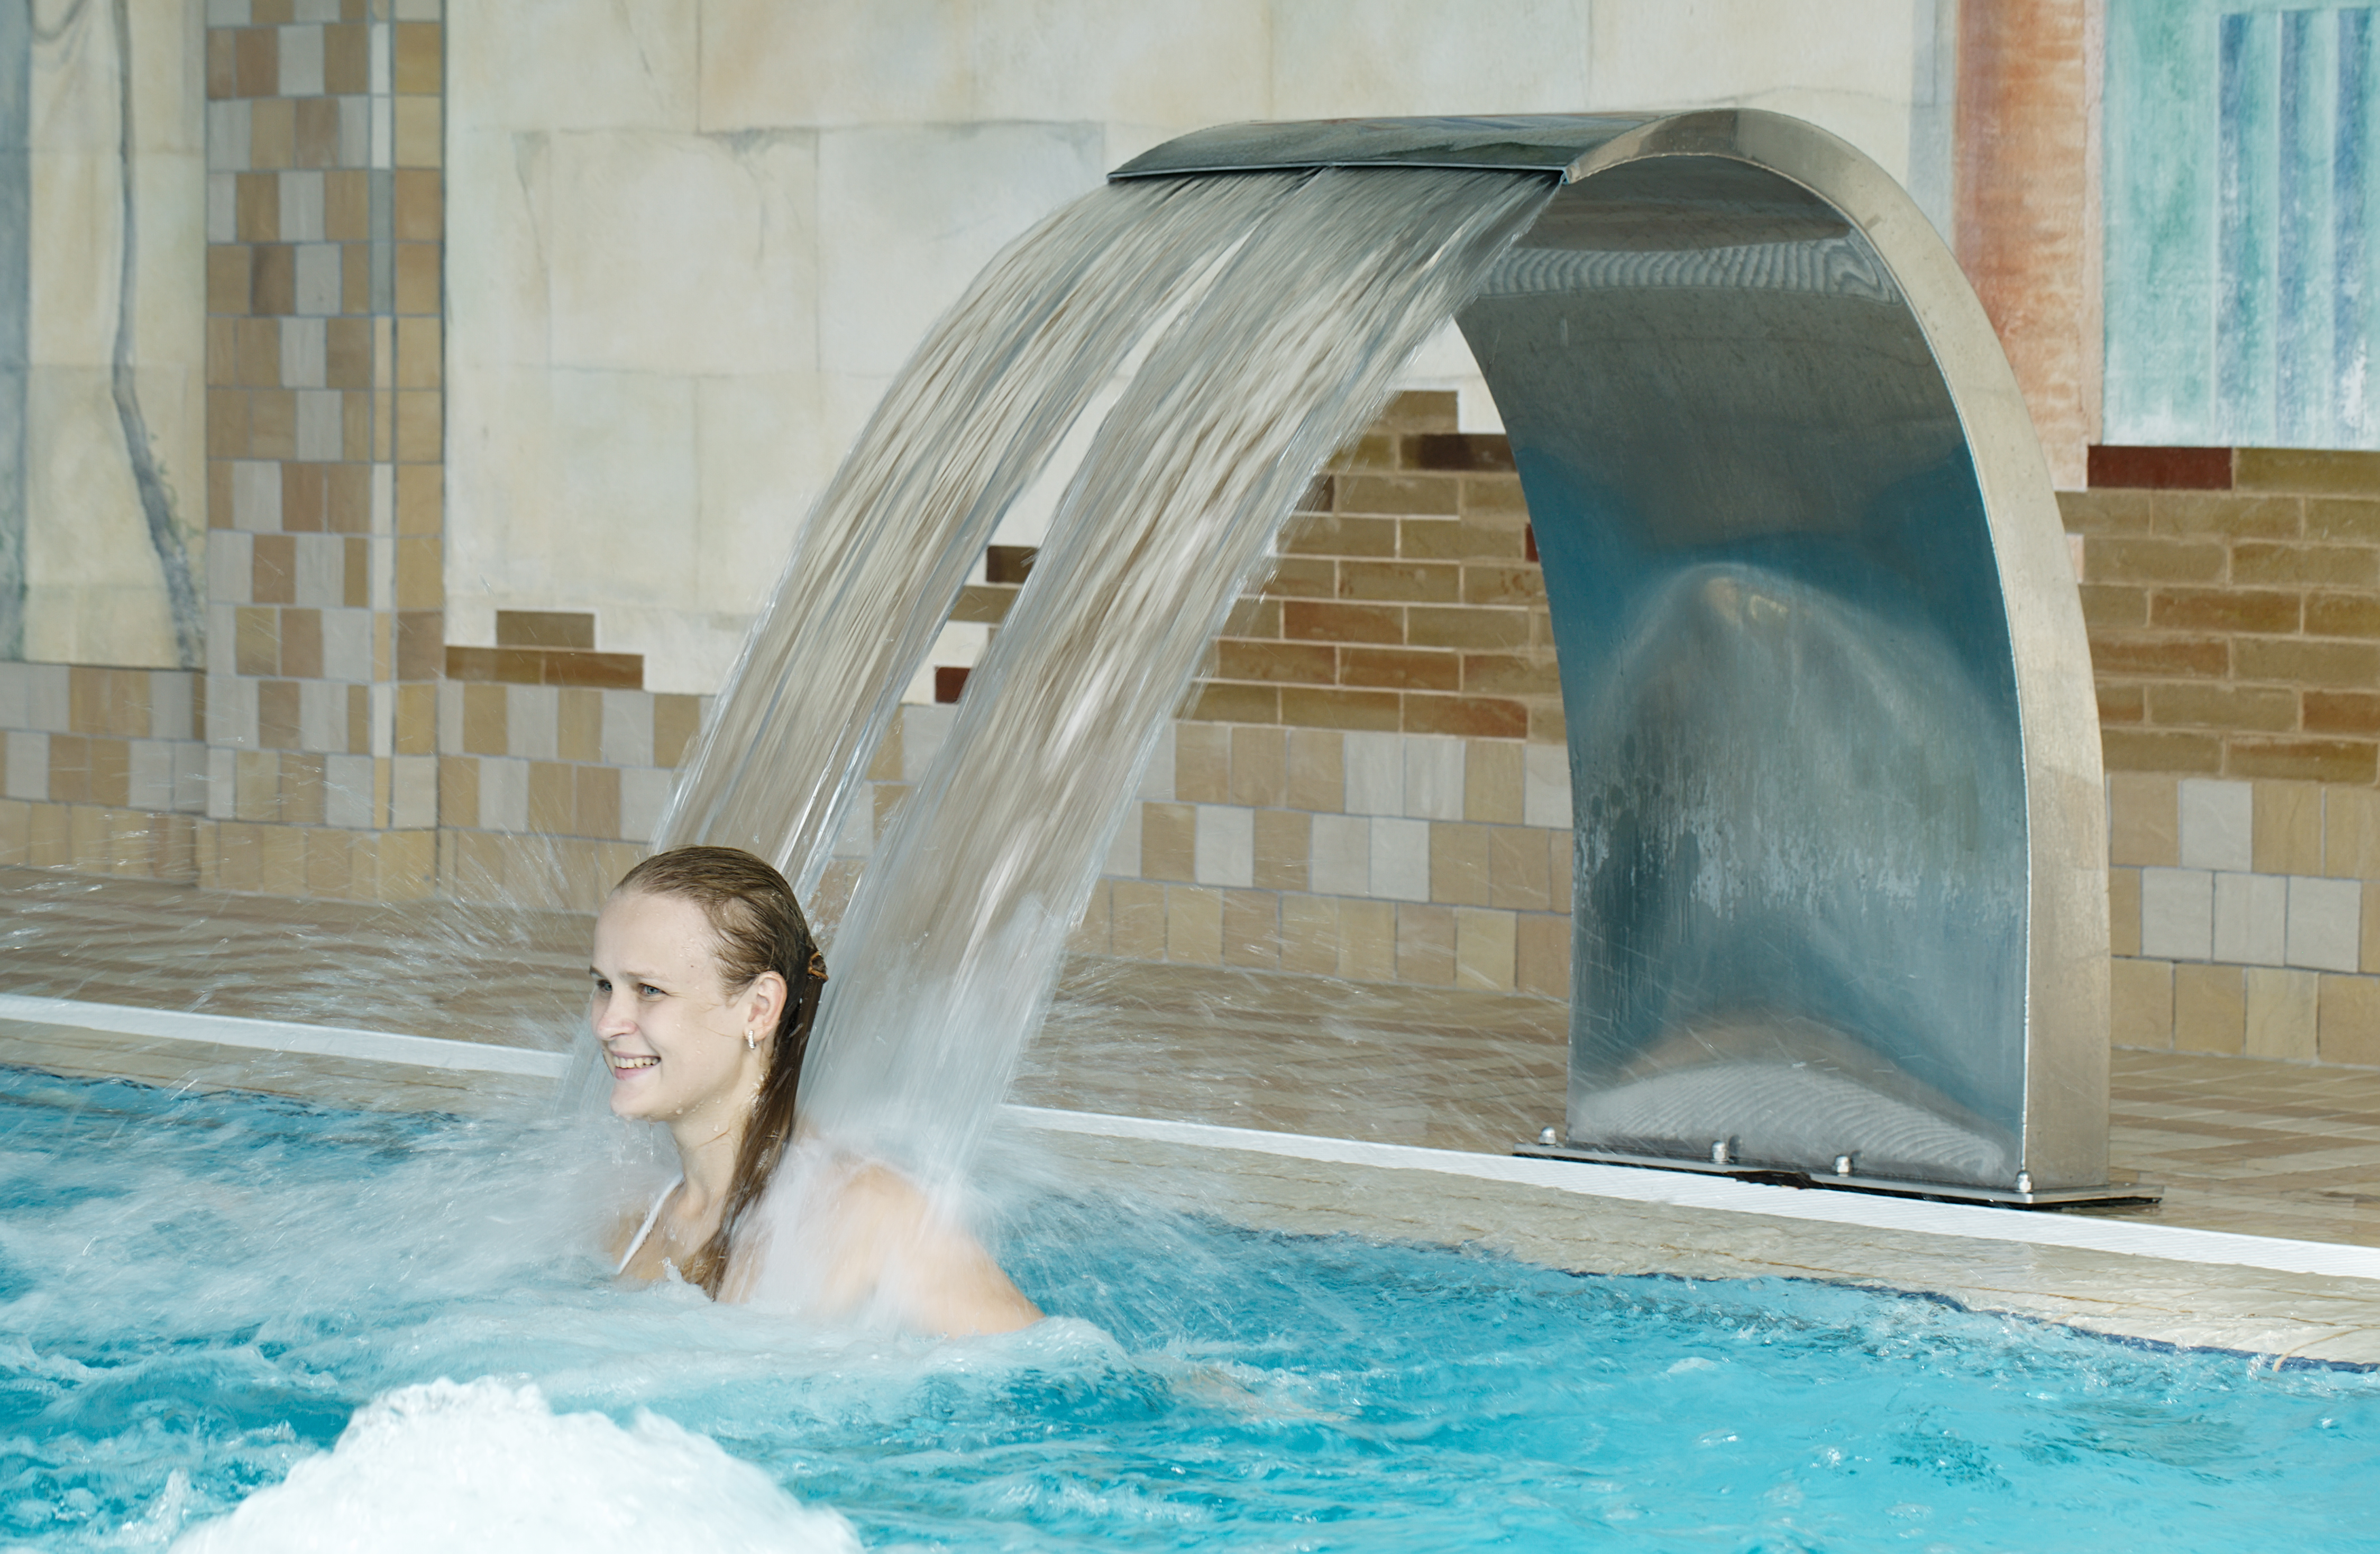 Enjoy take a dip in a cool pool with waterfall. Trying a Nordic Spa in Québec City offers the chance to experience a choice of thermotherapies.